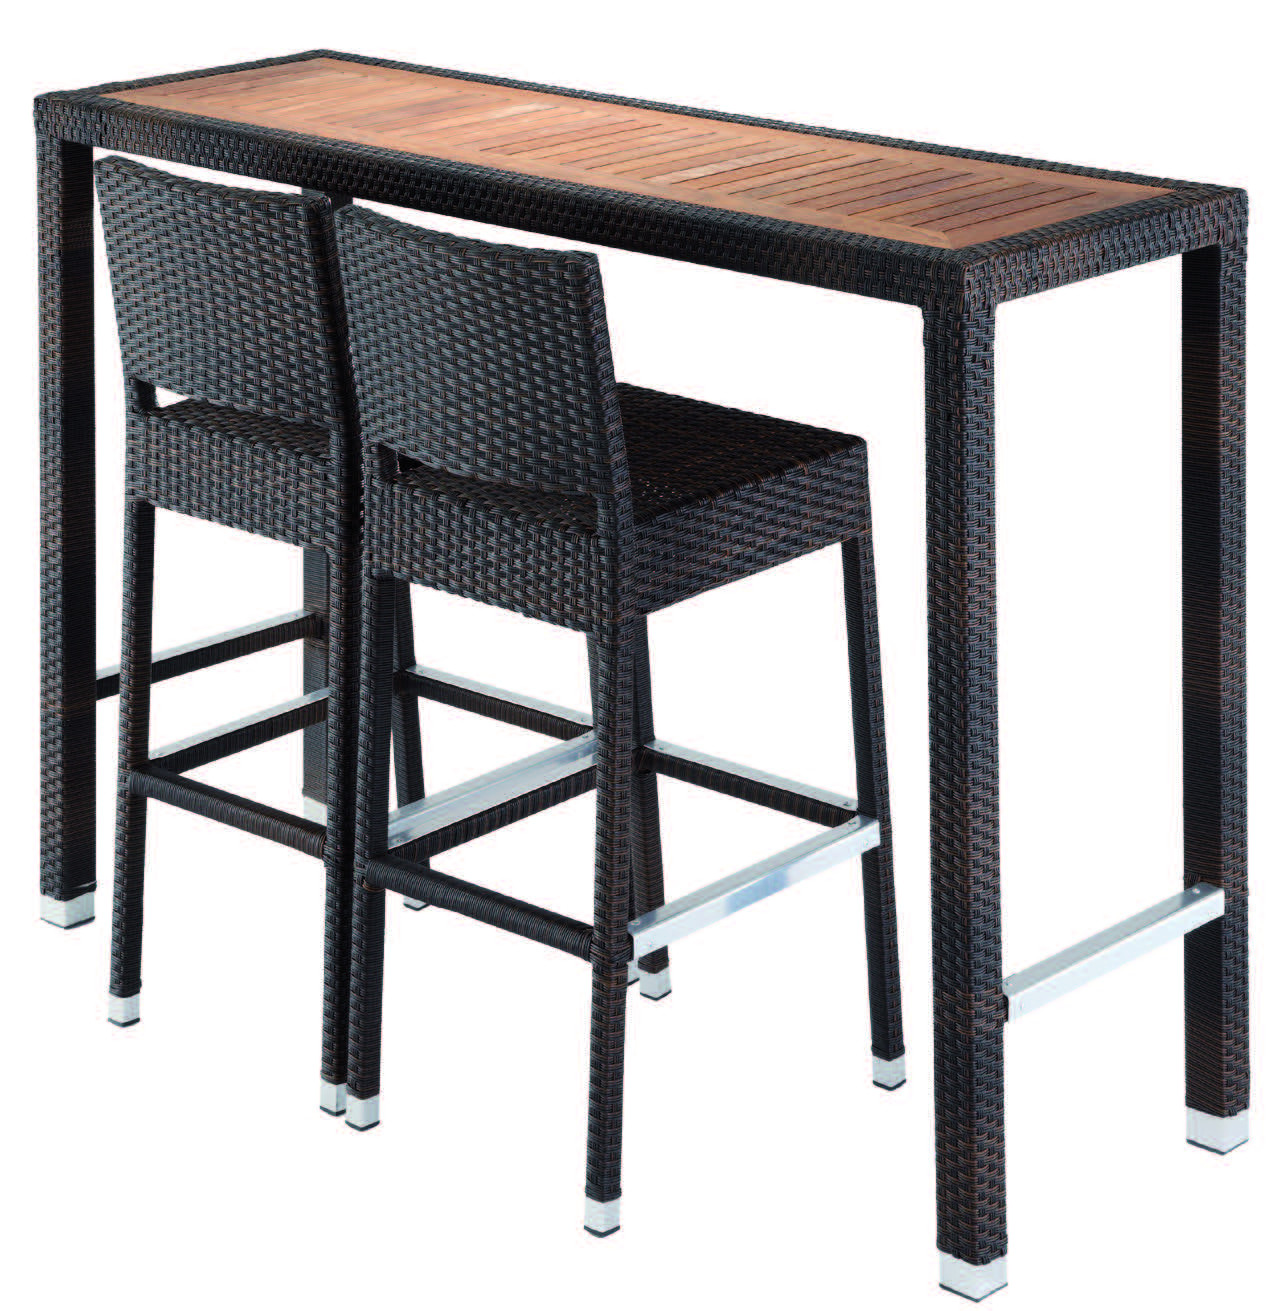 Drigani Poseur Table Two High Stools Outdoor Furniture Set